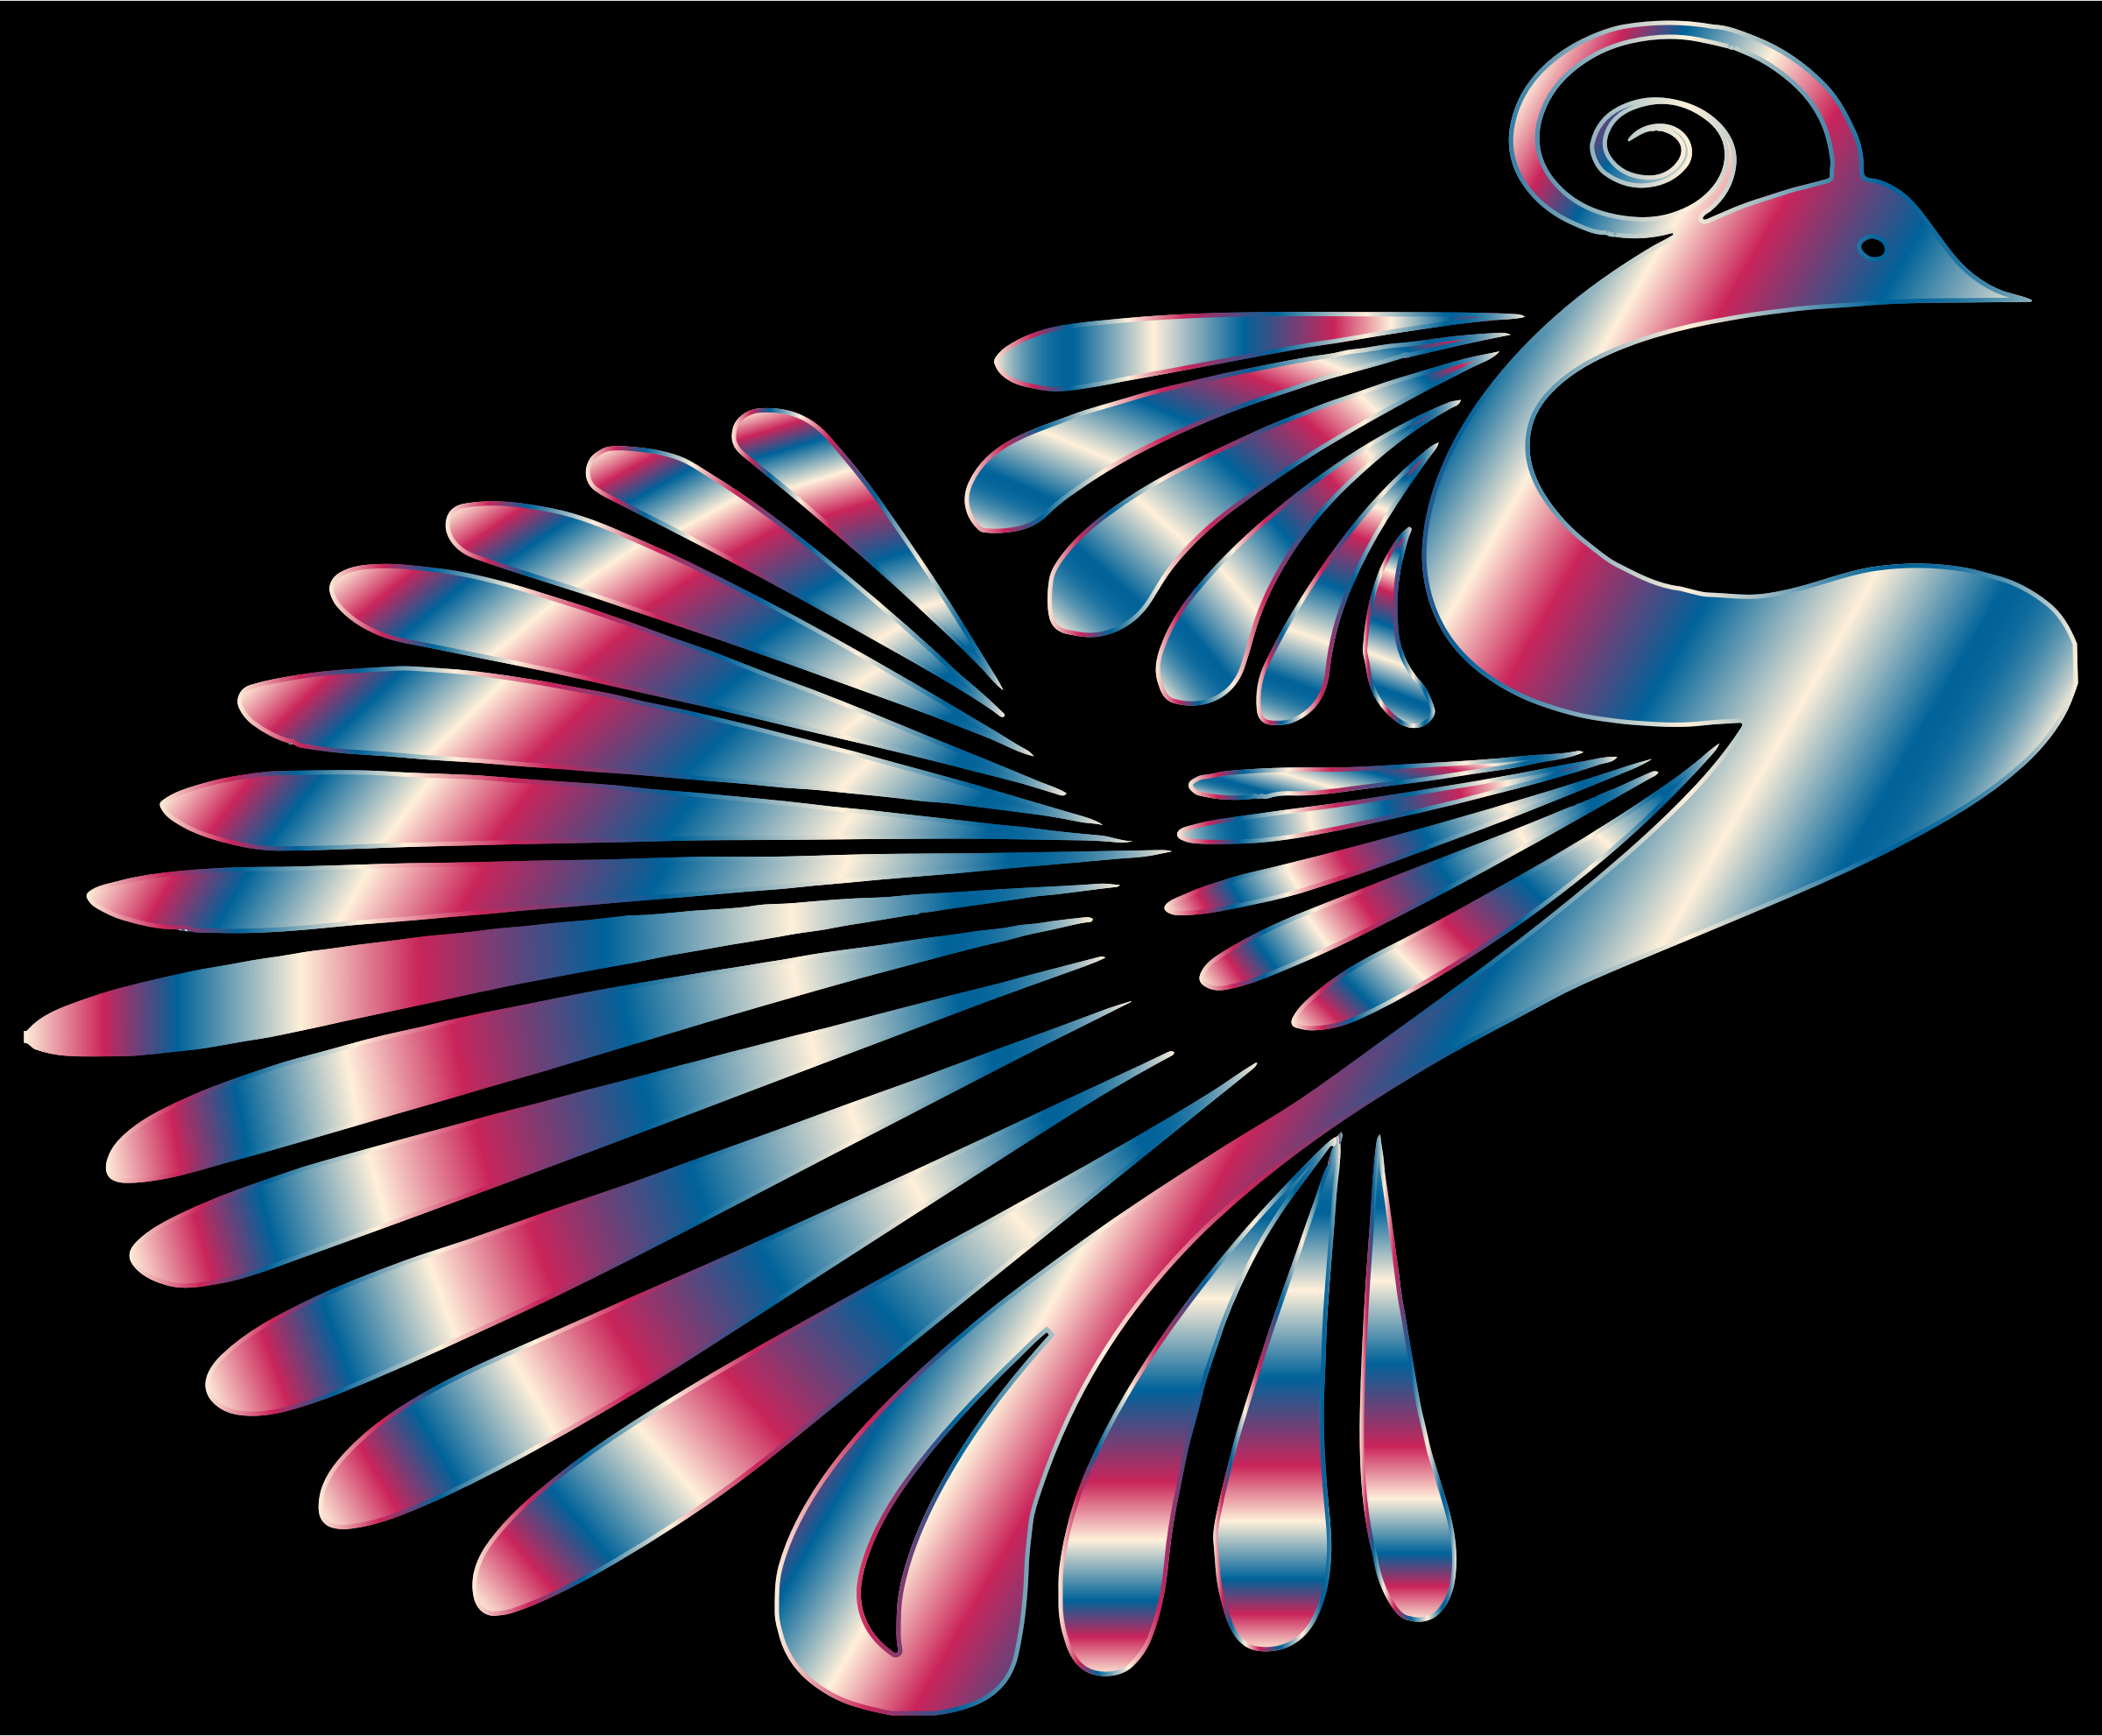 Colorful Stylized Peacock 12 by GDJ